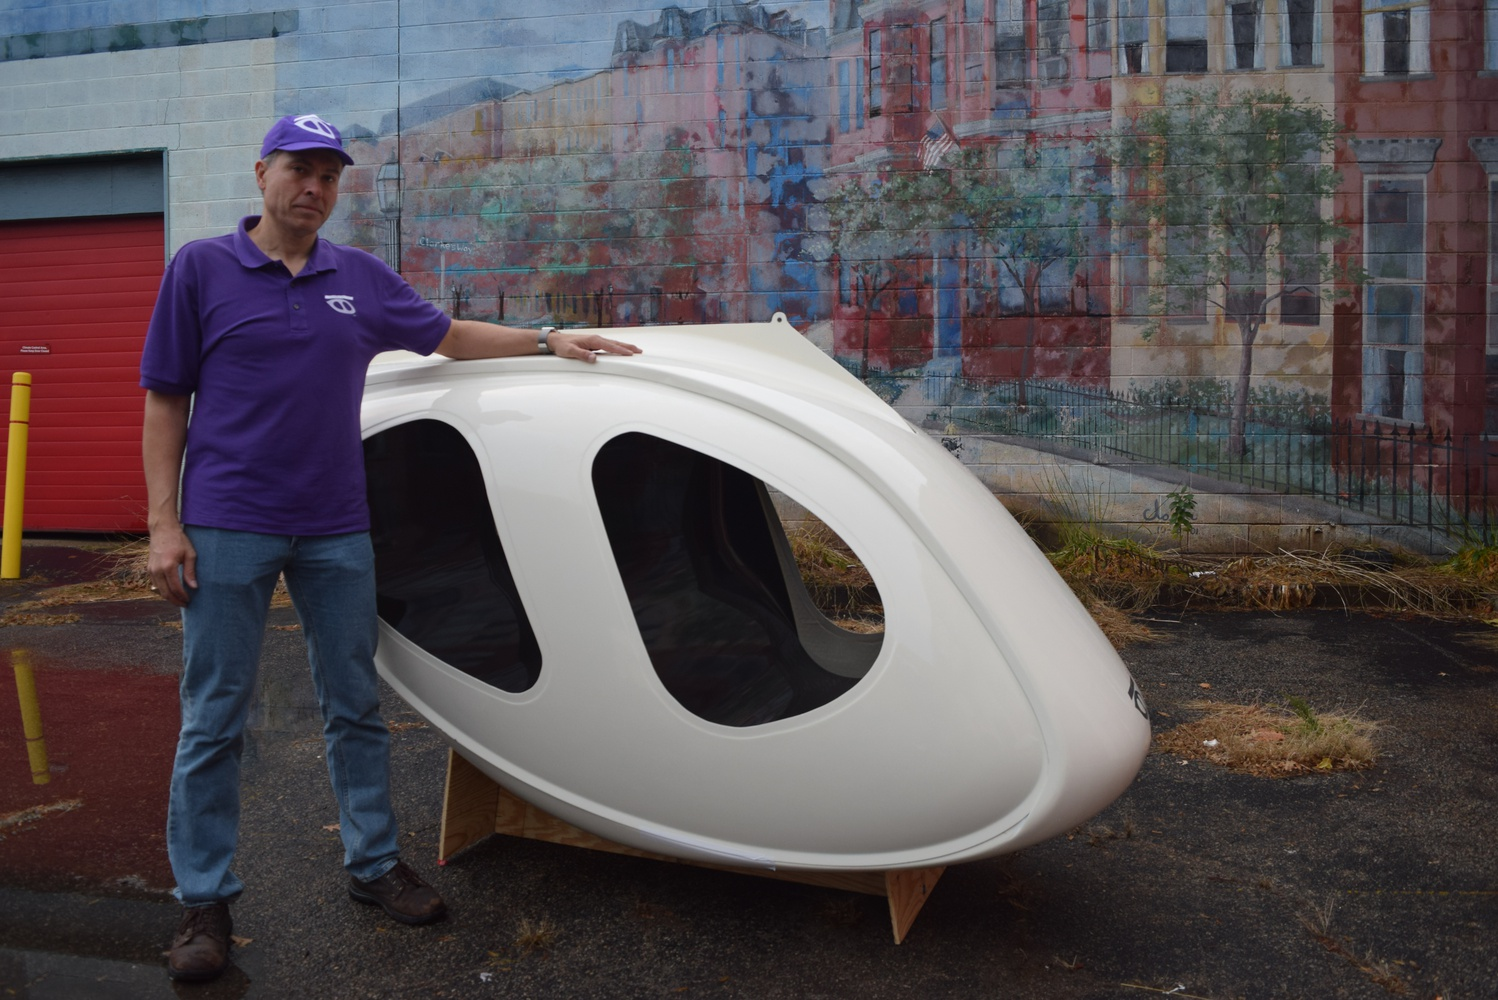 Mike D. Stanley, CEO of Transit X, shows off the pod he hopes will revolutionize public transit.